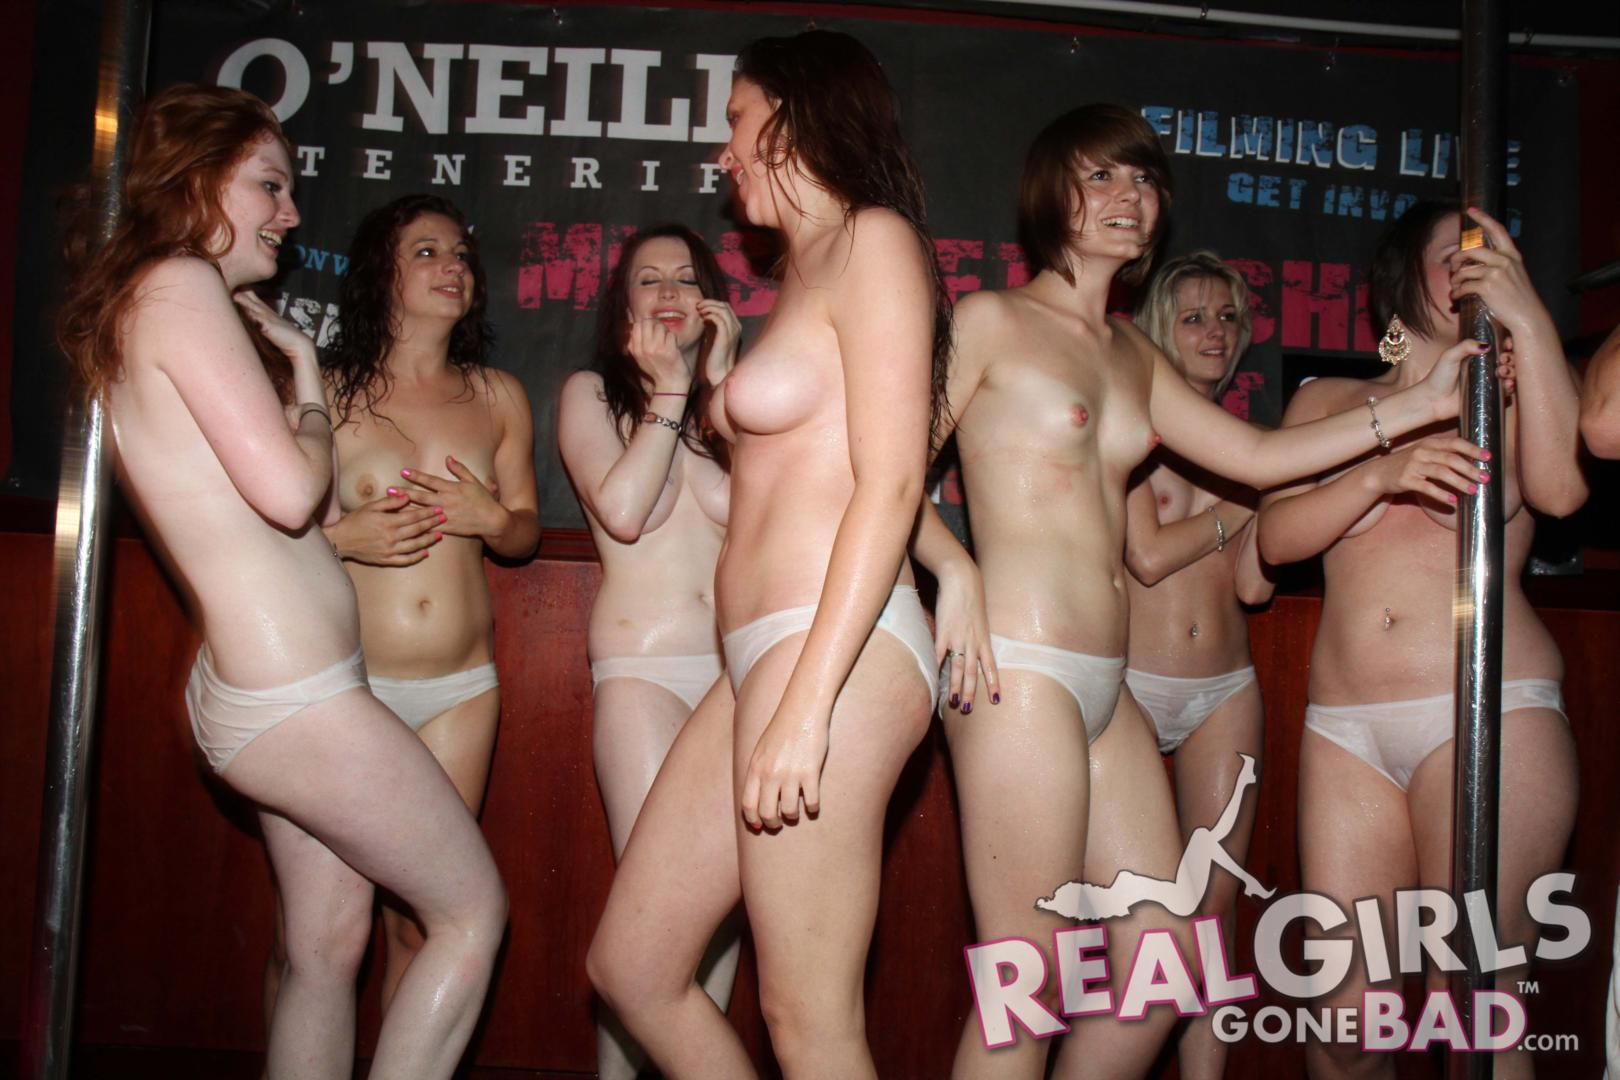 Amateur girls looking at naked men